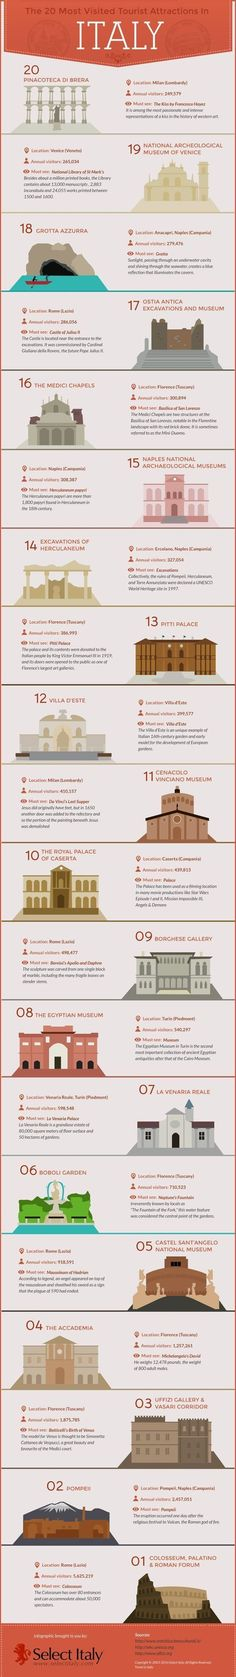 Popular Italian Attractions Infographic: Looking for popular Italian attractions? Italy is, without any doubt, one of the most desired travel destinations #italianinfographic #travelinfographic